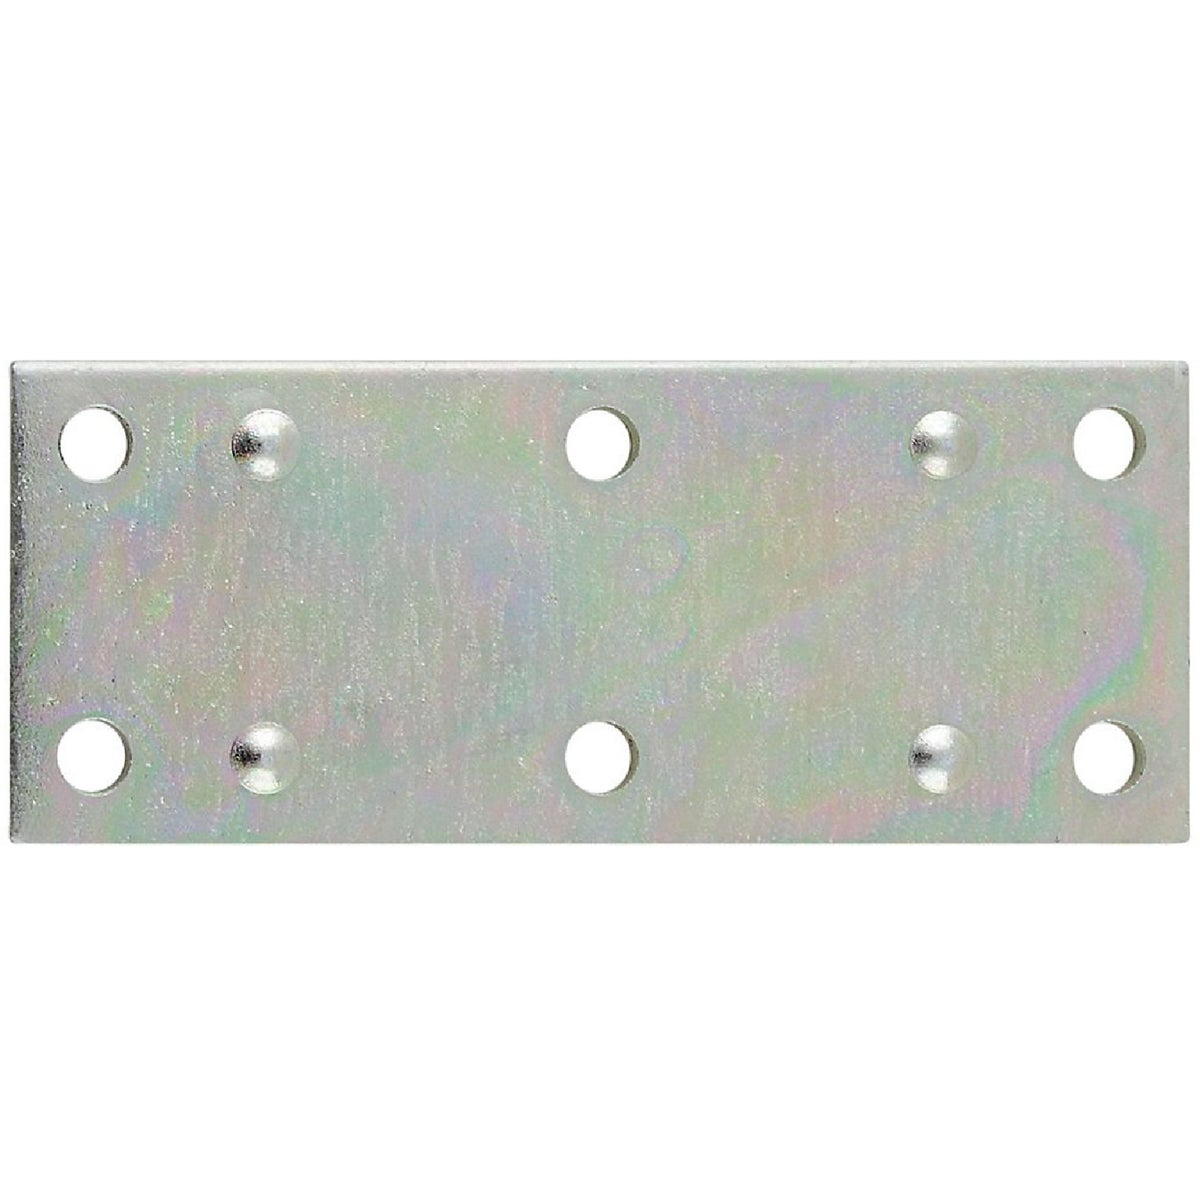 "3-1/2"" MENDING PLATE - N220111 by National Mfg Co"